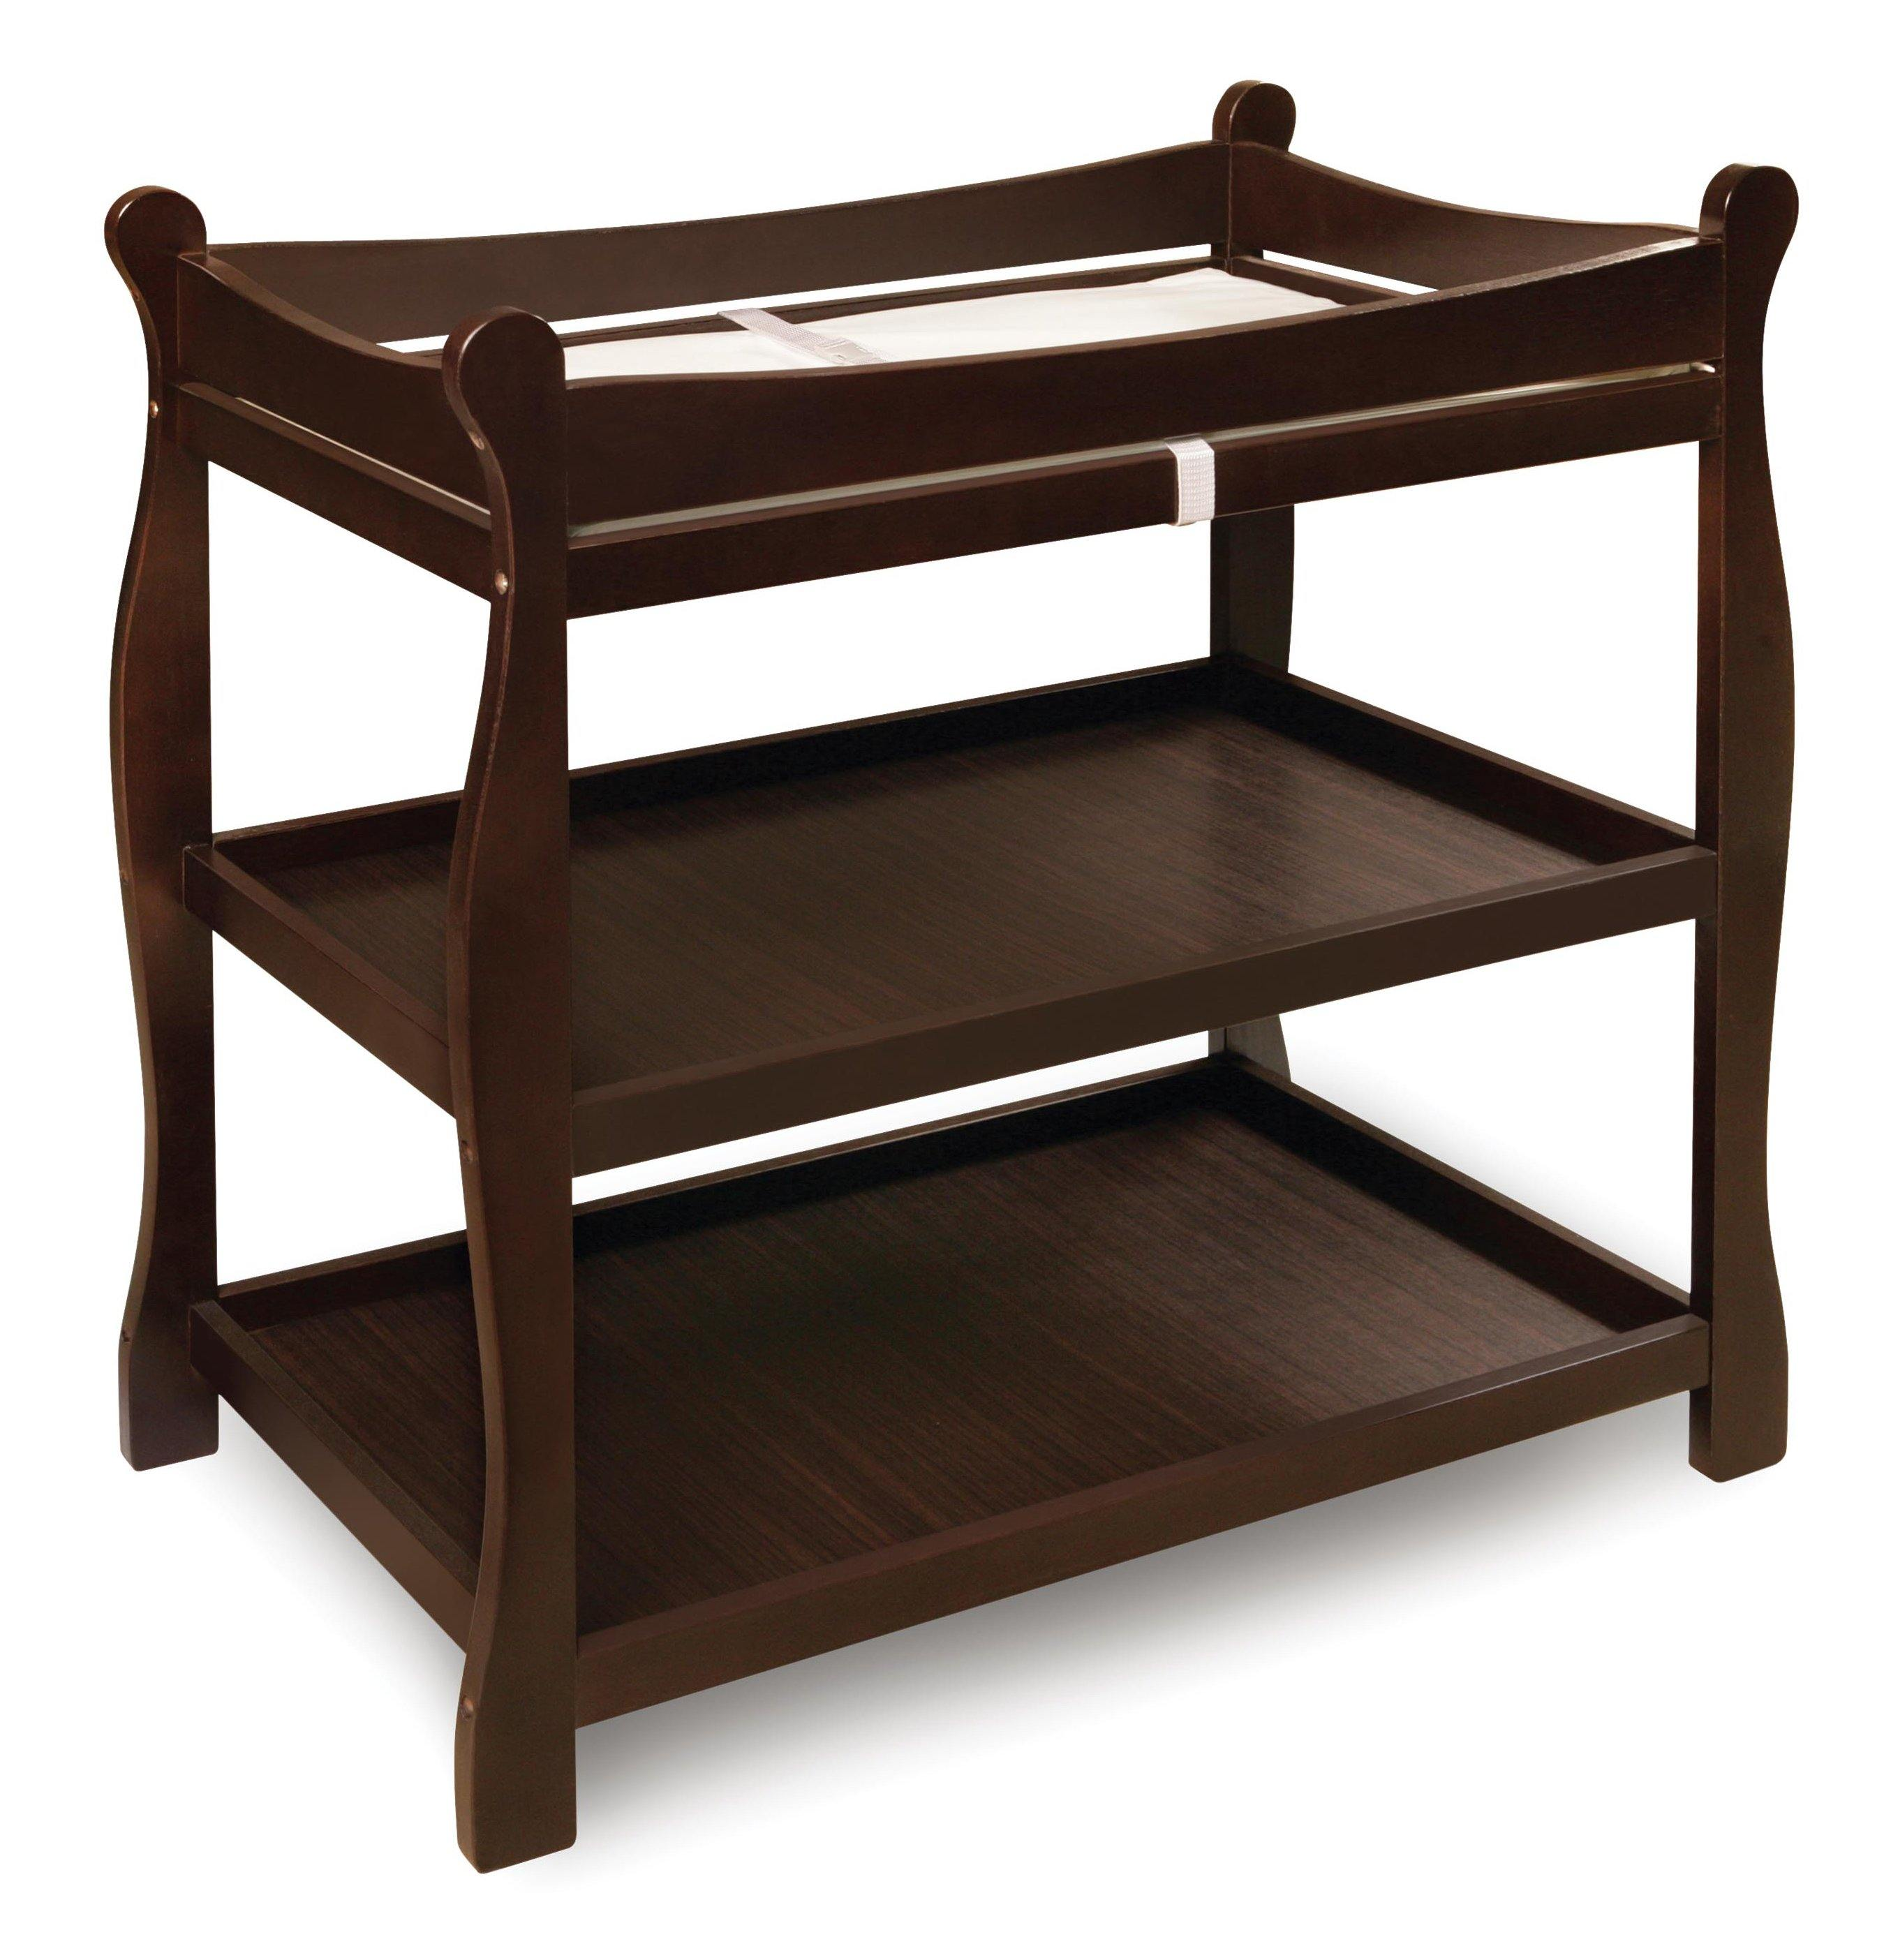 Sleigh Style Baby Changing Table - Espresso - My USA Furniture